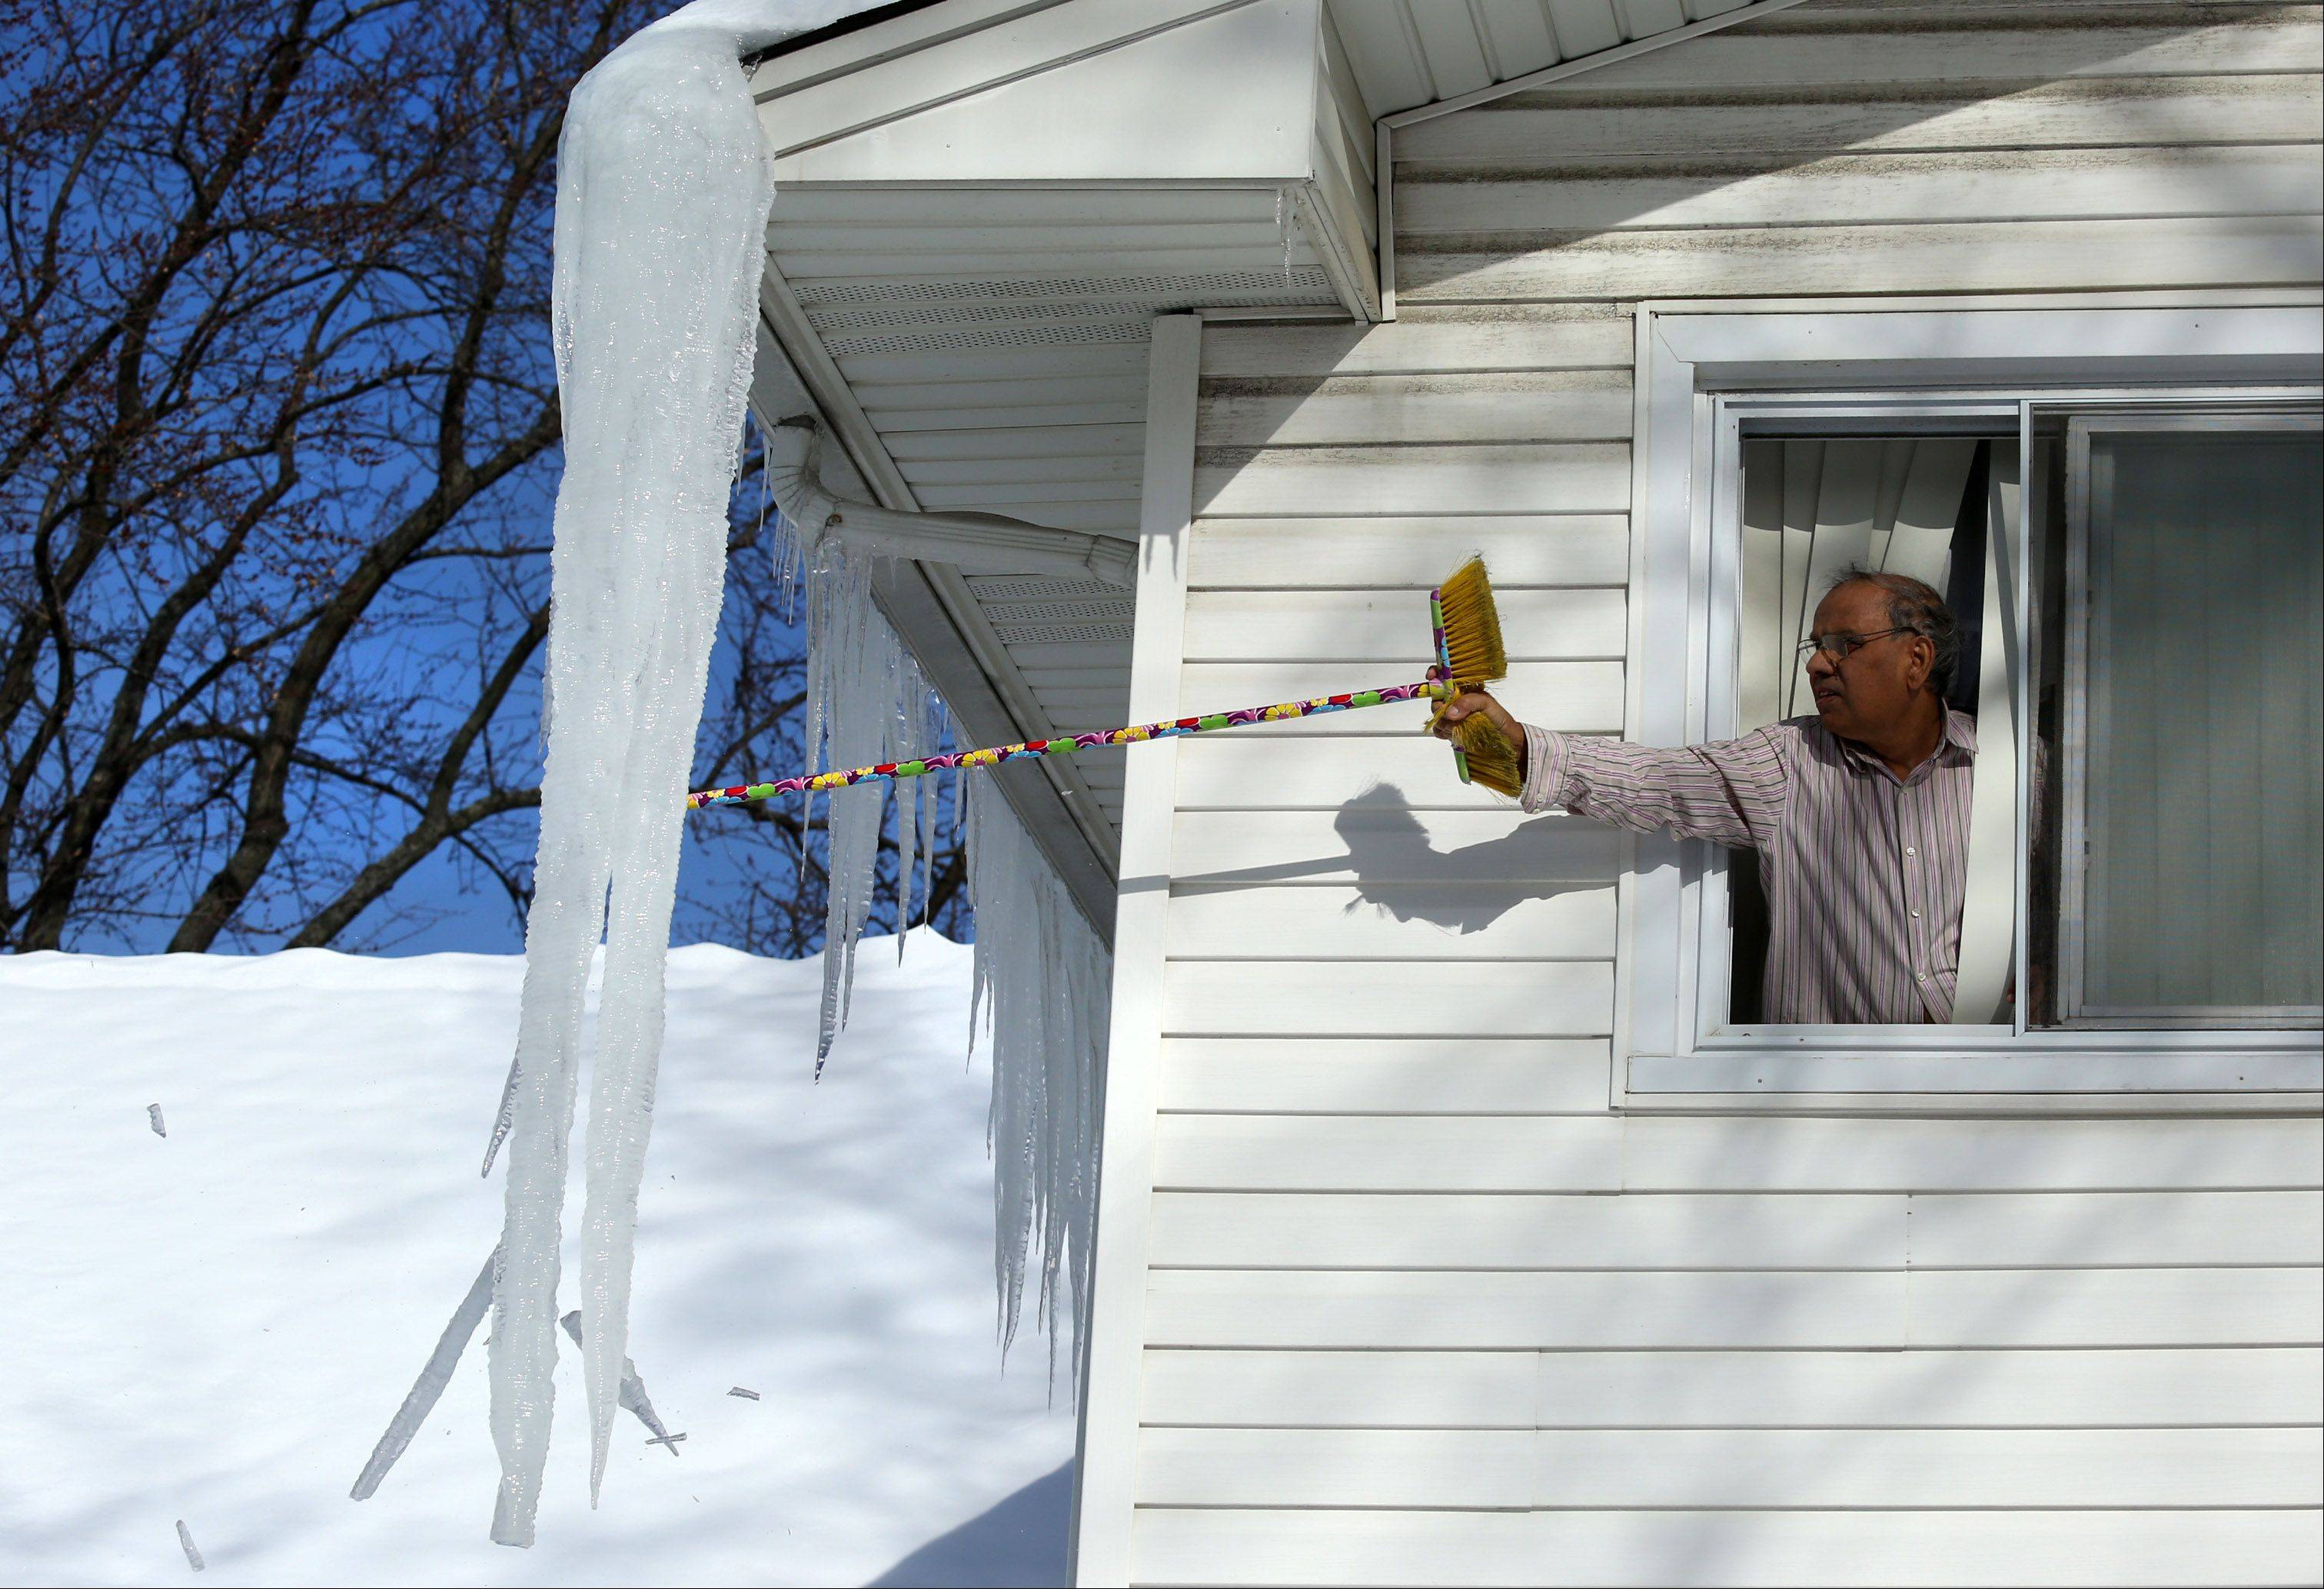 Leaning out a second-floor window, Mohammad Mohyuddin finds a broom a little too short to knock icicles off his home in Rolling Meadows.